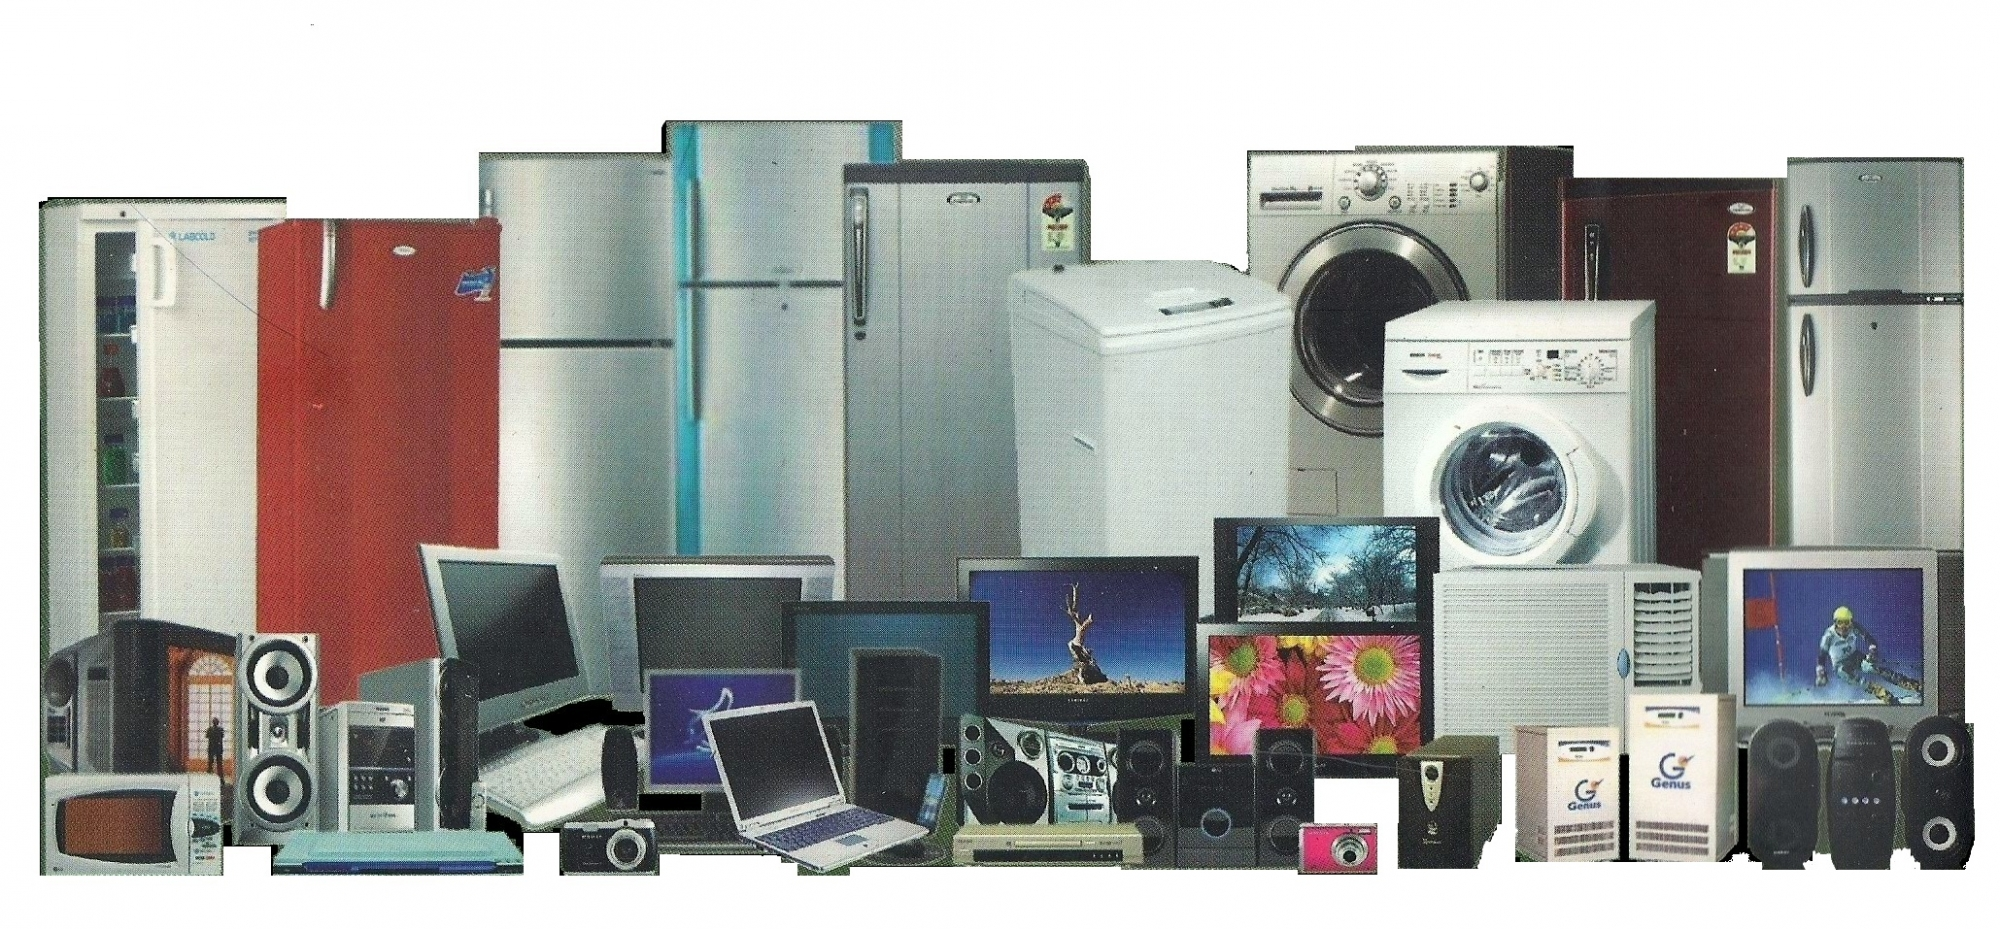 consumer durable insustry Industry news and analysis on latest consumer durables, products, fashion, fmcg, electronics, food & textile news on beverage companies & liquor, tobacco.